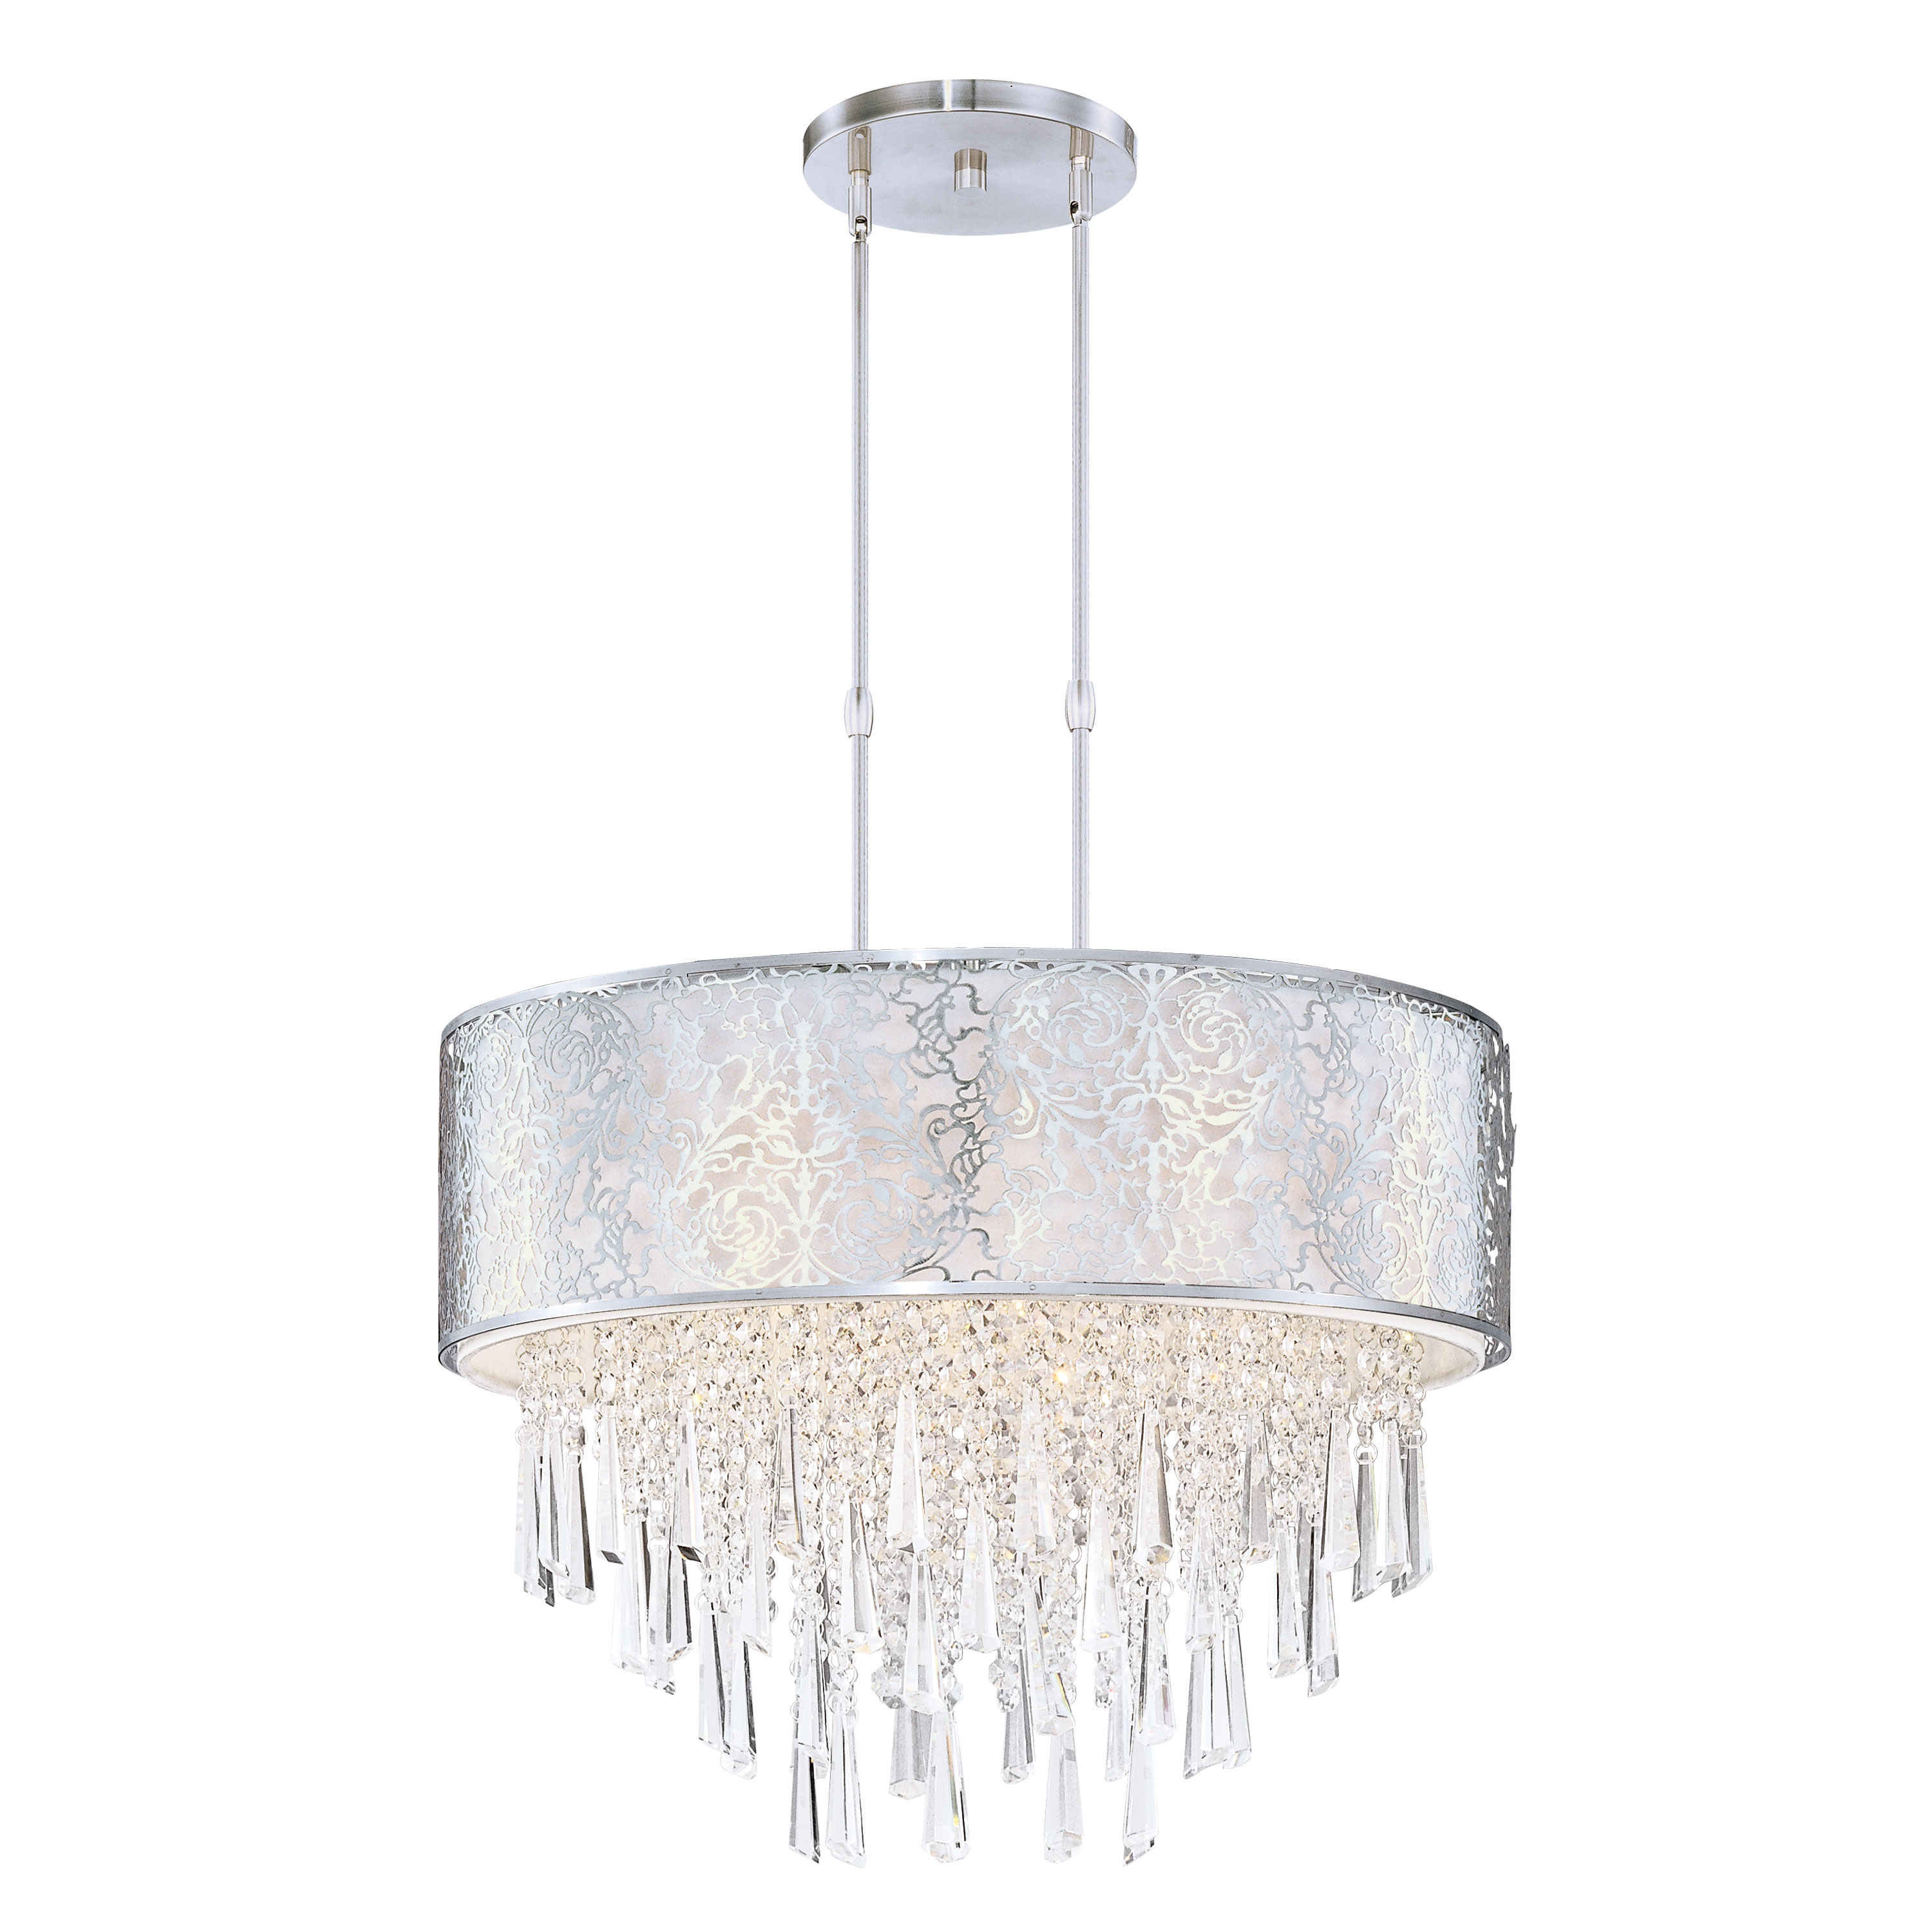 Rapture Pendant | Maxim Lighting